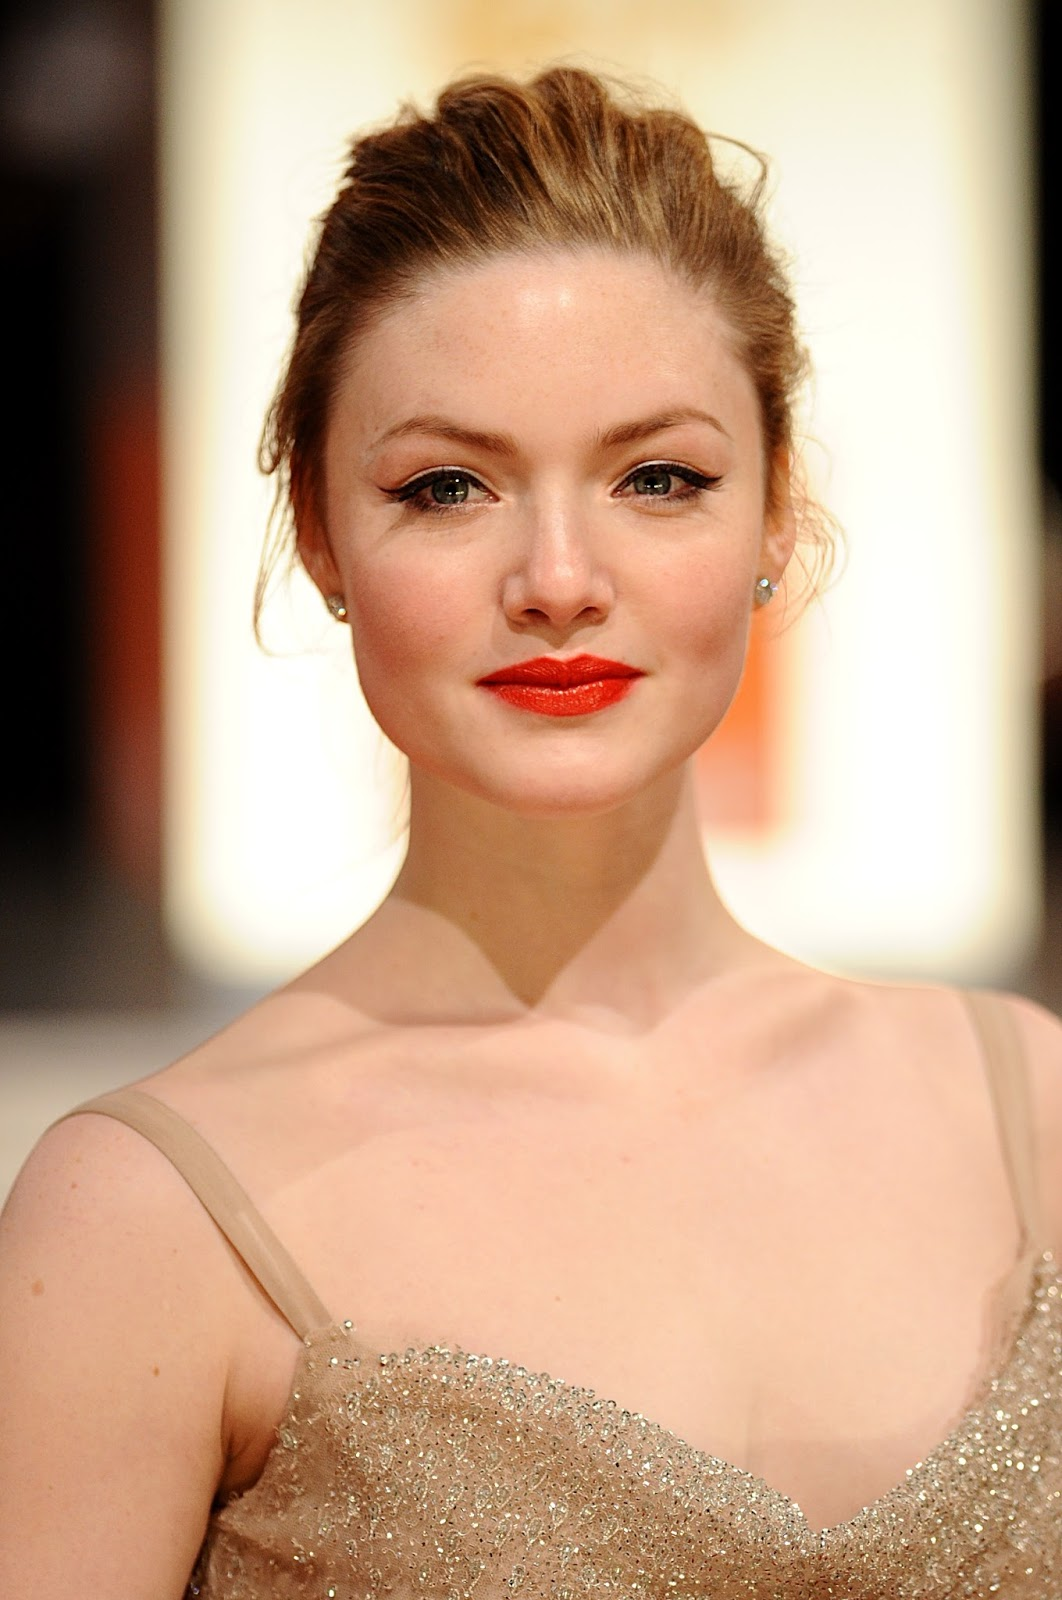 Cleavage Holliday Grainger nude photos 2019